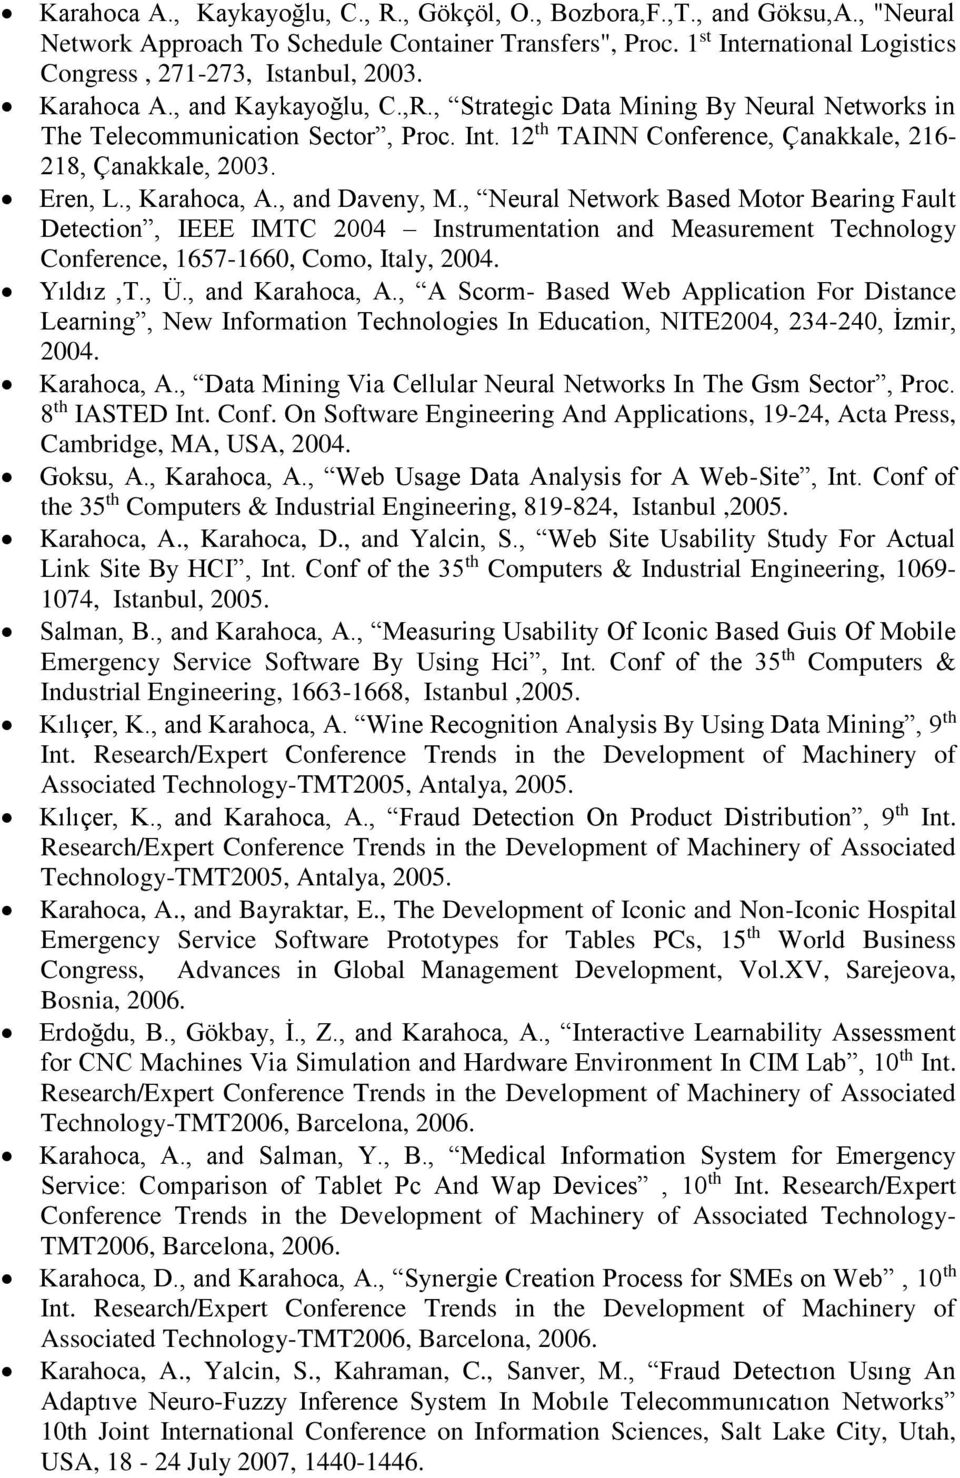 Eren, L., Karahoca, A., and Daveny, M., Neural Network Based Motor Bearing Fault Detection, IEEE IMTC 2004 Instrumentation and Measurement Technology Conference, 1657-1660, Como, Italy, 2004.